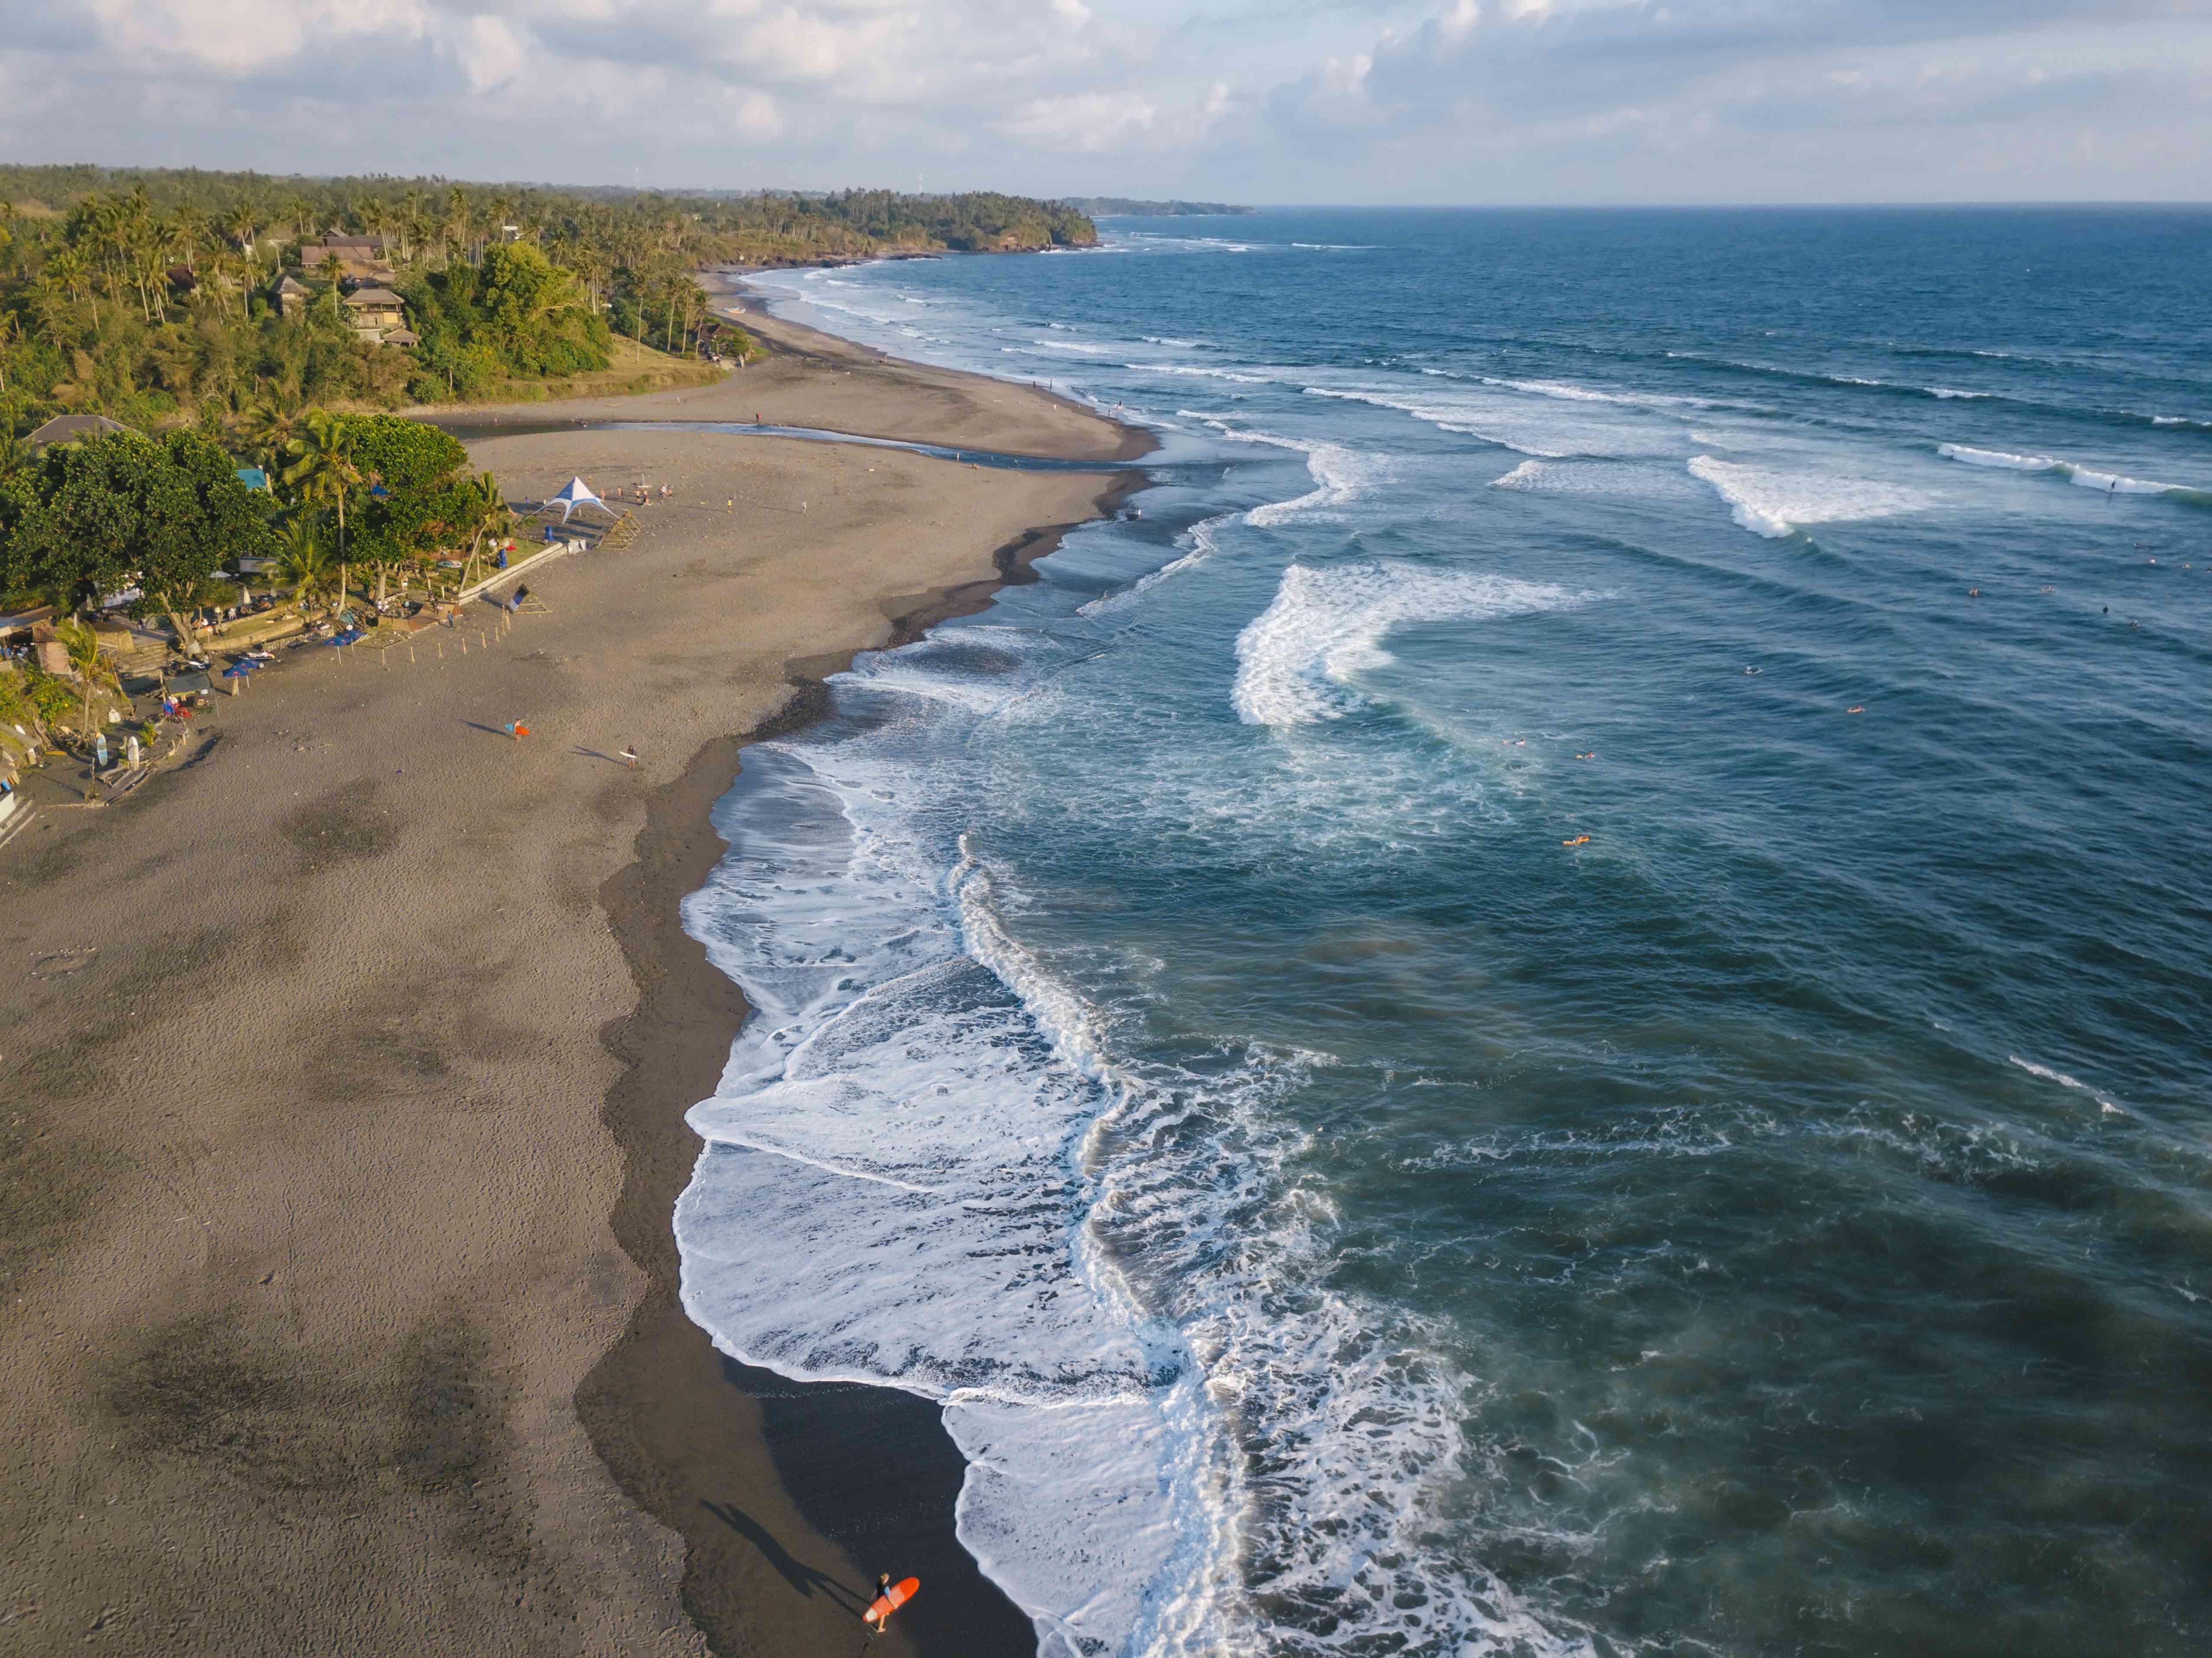 Indonesia, Bali, Aerial view of surfers at Balian beach